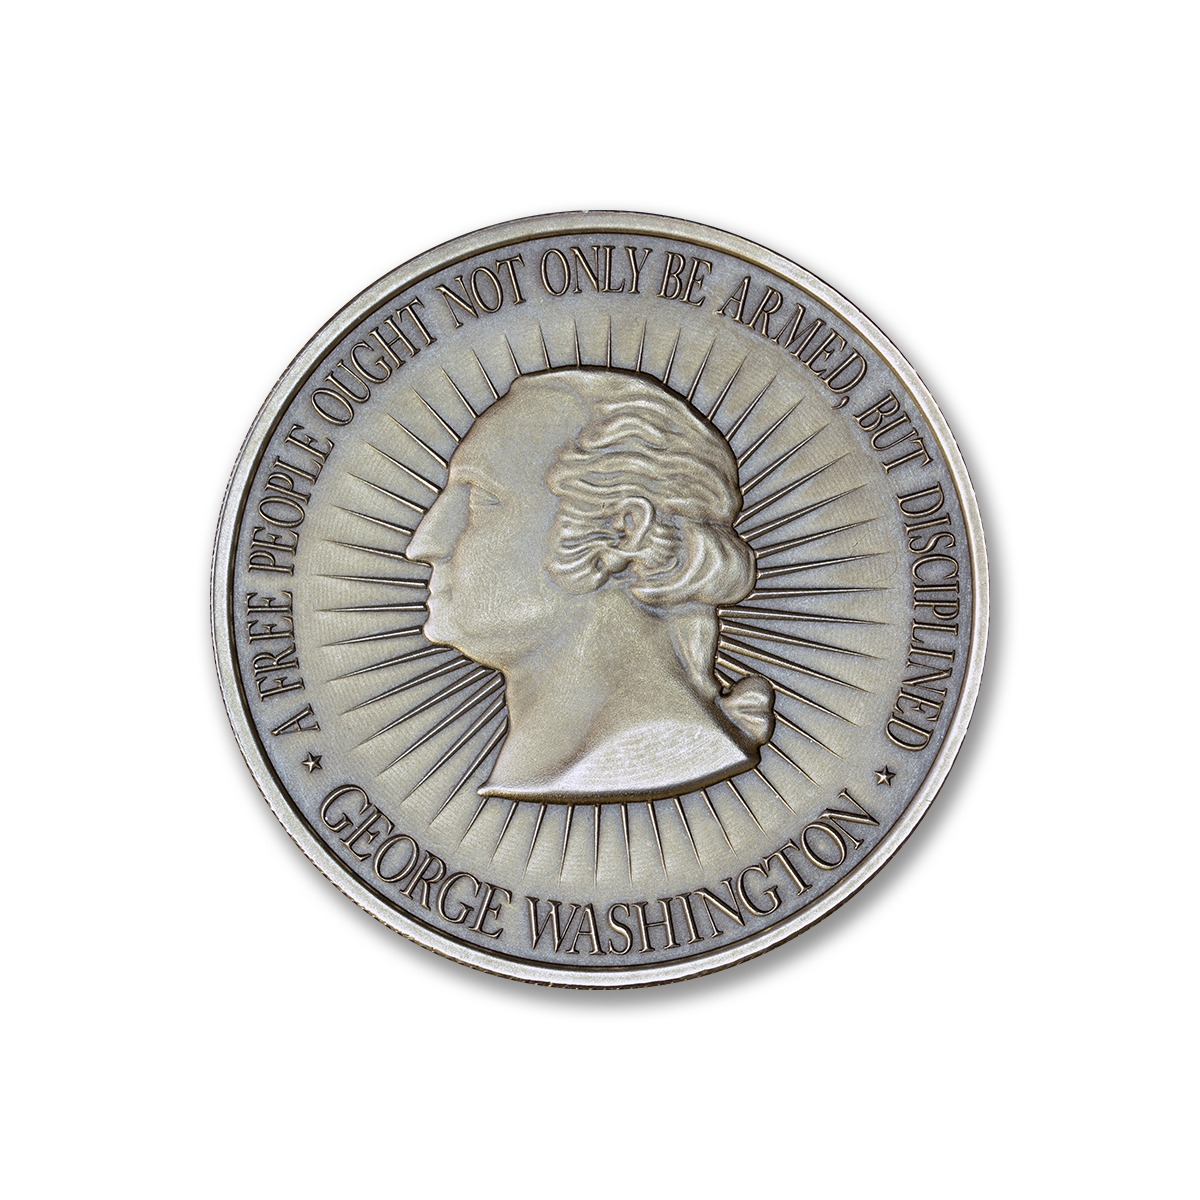 WASHINGTON BUST / BILL OF RIGHTS 2A – 1 TROY OUNCE – 39MM (ANTIQUED)